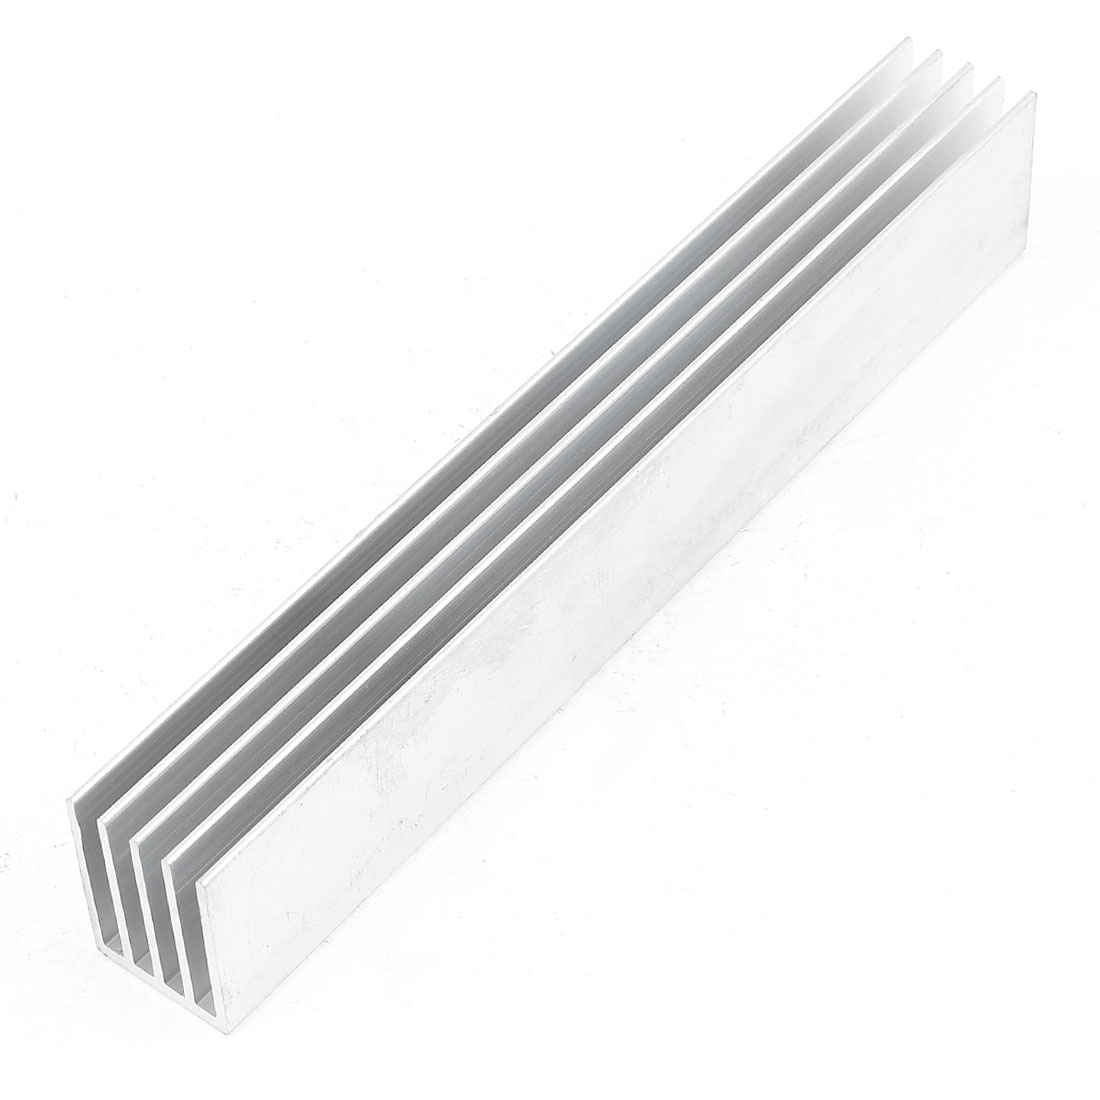 Silver Tone Aluminum Cooler Radiator Heat Sink Heatsink 150mm x 25mm x 19mm